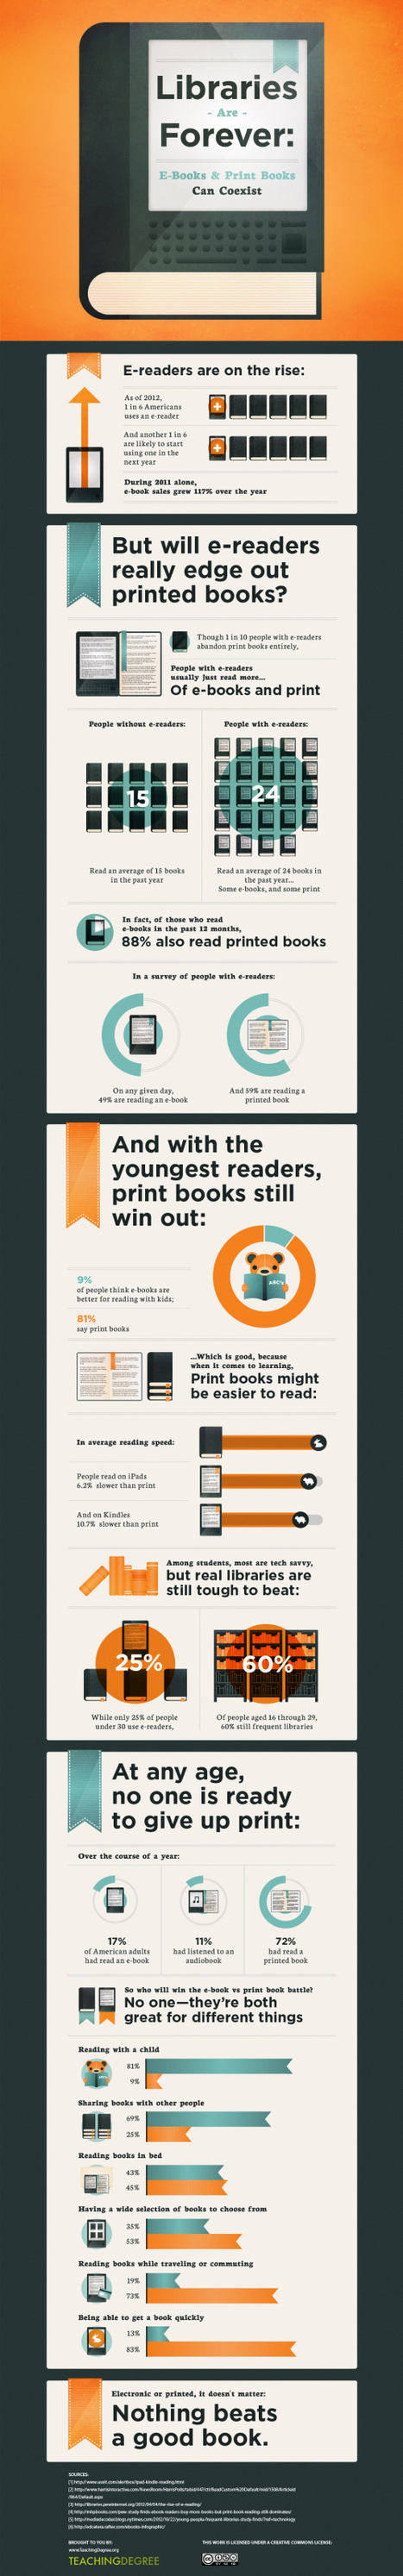 Ebooks e bibliotecas podem coexistir? [infográfico] | Science, Technology and Society | Scoop.it